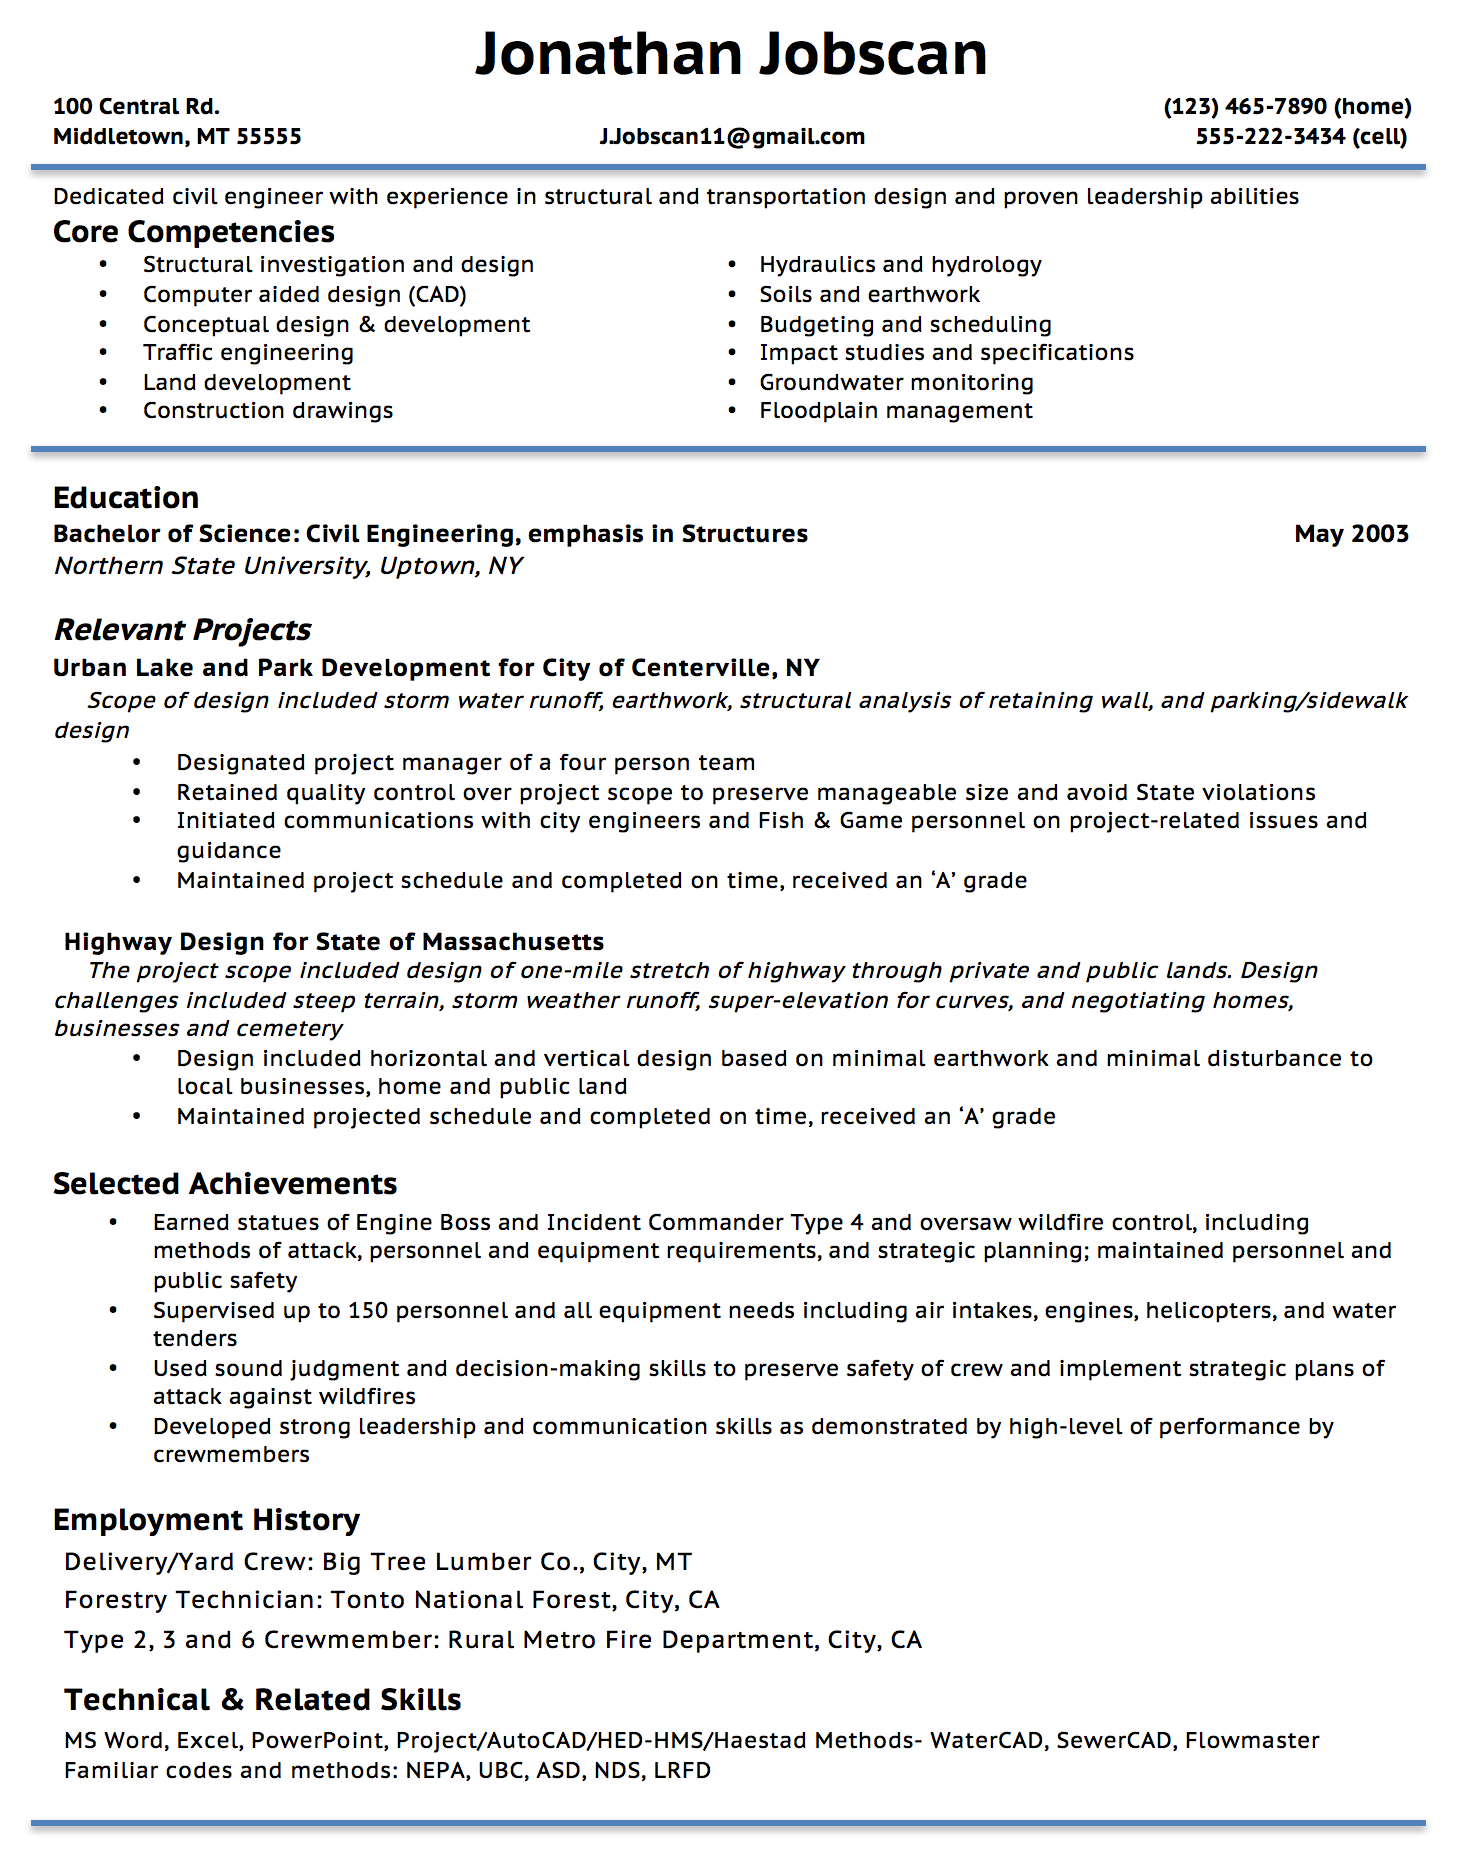 Opposenewapstandardsus  Stunning Resume Writing Guide  Jobscan With Outstanding Example Of A Functional Resume Format With Extraordinary Restaurant Resume Skills Also Business Resume Templates In Addition How To Make An Impressive Resume And Sample Resume For Entry Level As Well As Landman Resume Additionally Best Teacher Resumes From Jobscanco With Opposenewapstandardsus  Outstanding Resume Writing Guide  Jobscan With Extraordinary Example Of A Functional Resume Format And Stunning Restaurant Resume Skills Also Business Resume Templates In Addition How To Make An Impressive Resume From Jobscanco